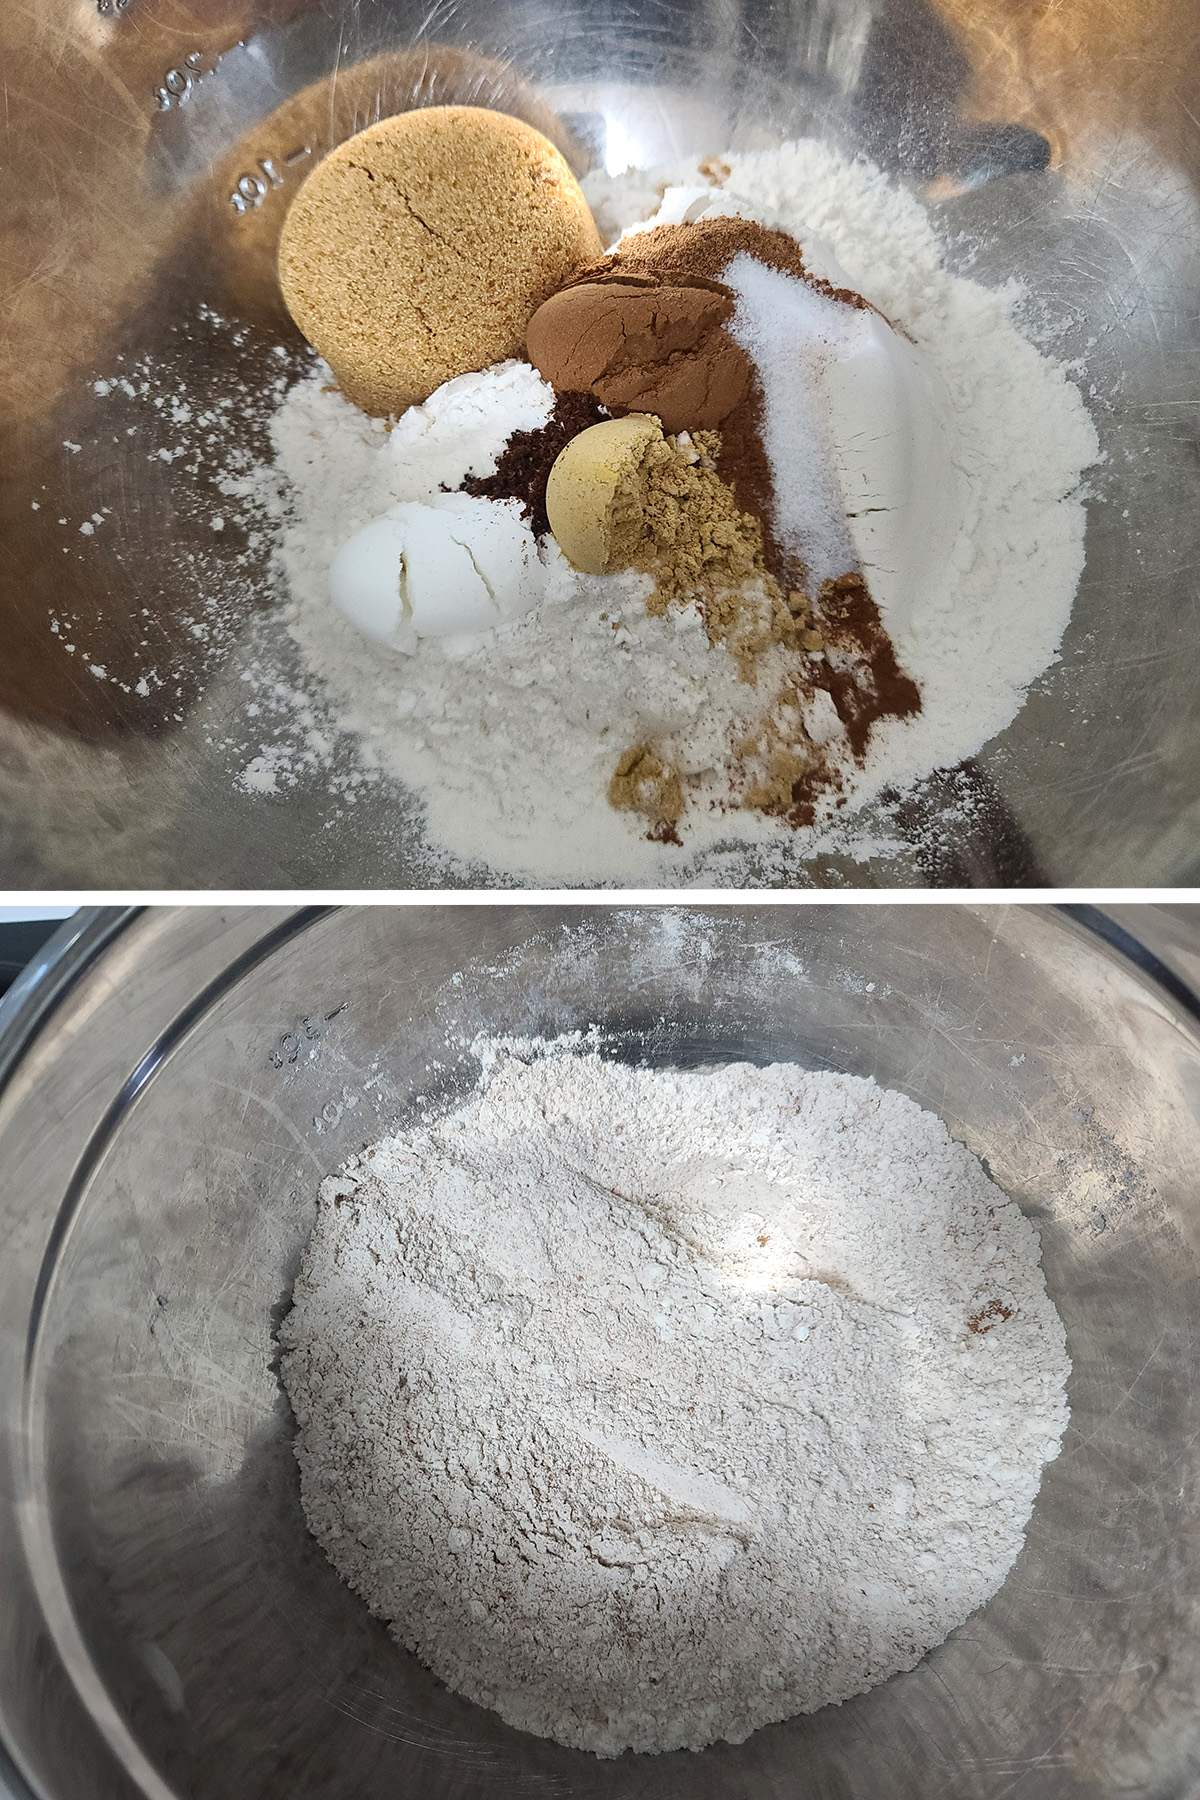 The dry ingredients being mixed together in a bowl.